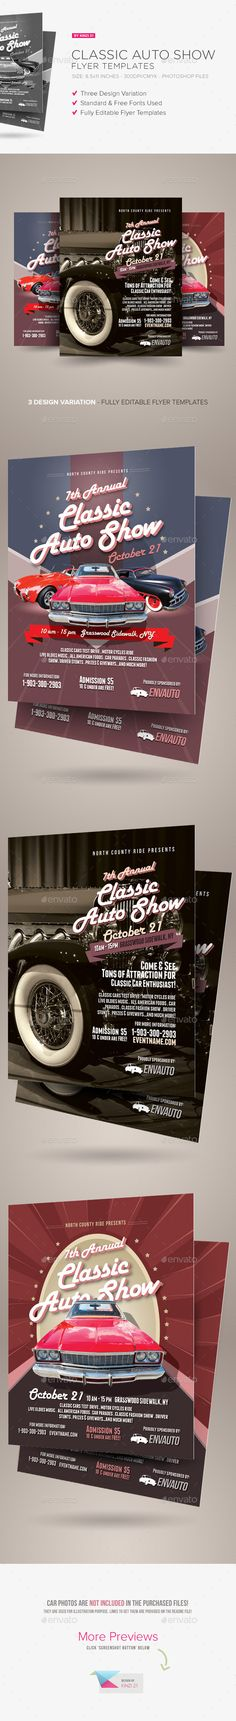 Classic Auto Show Flyers Template PSD   Buy and Download: http://graphicriver.net/item/classic-auto-show-flyers/8829272?WT.ac=category_thumb&WT.z_author=kinzi21&ref=ksioks